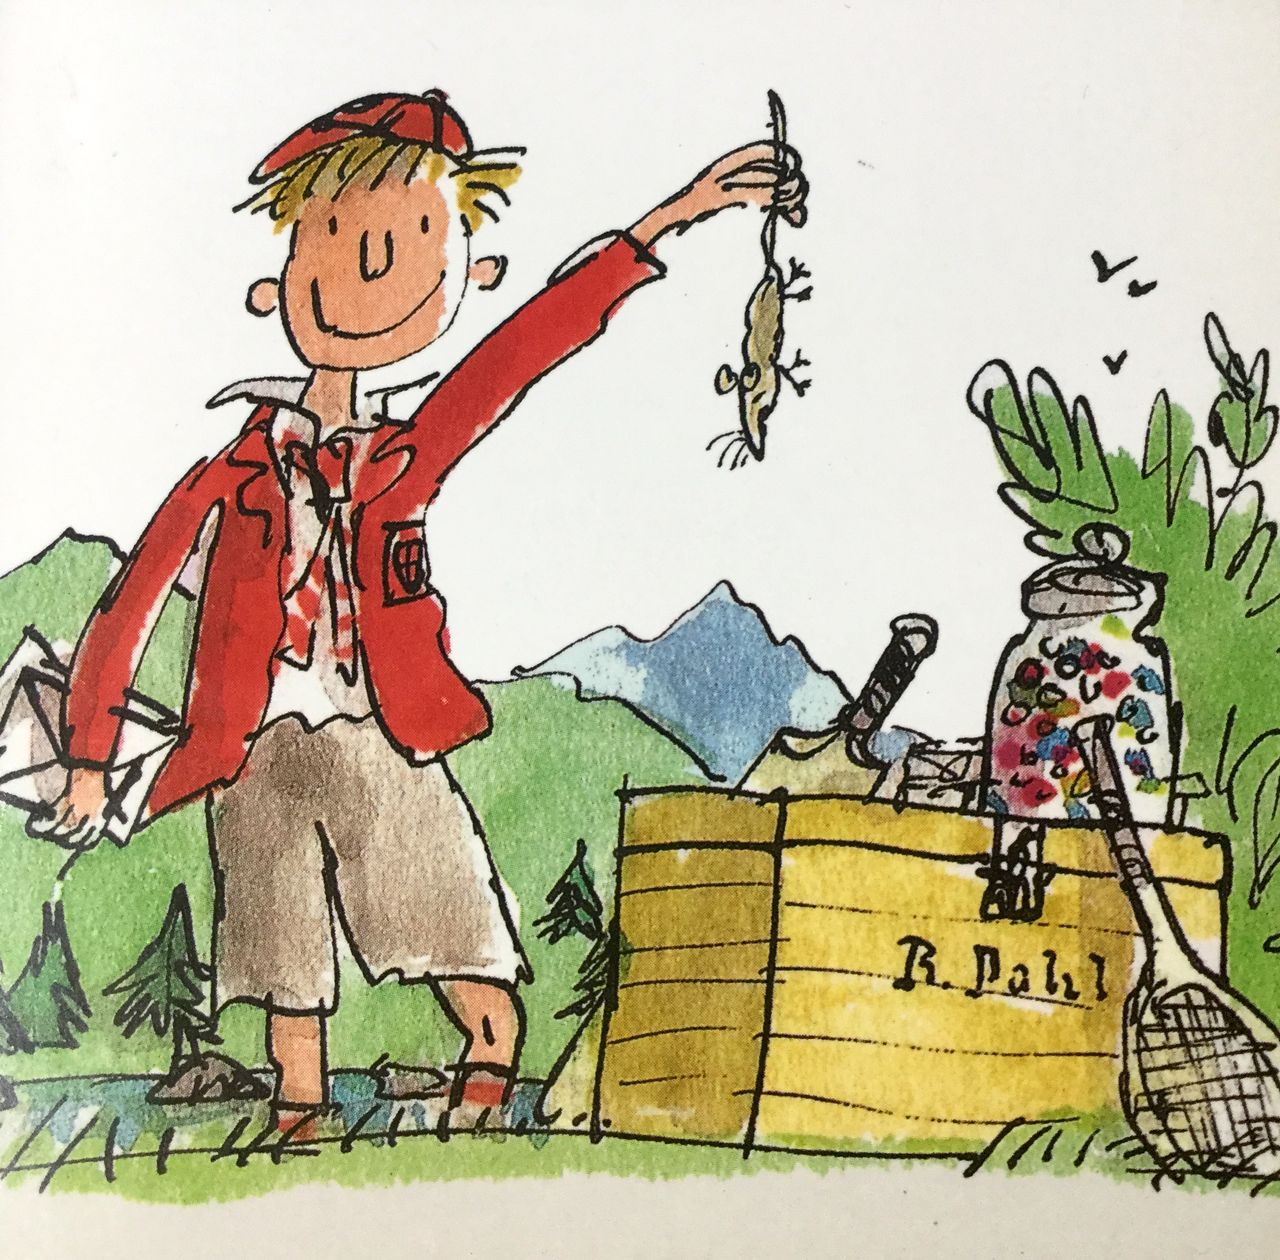 boy roald dahl In 1961 dahl wrote about a boy called james and his adventures with a giant peach author - roald dahl roald dahl was born on the 13th of september 1916, in llandaff, cardiff, to norwegian parents.